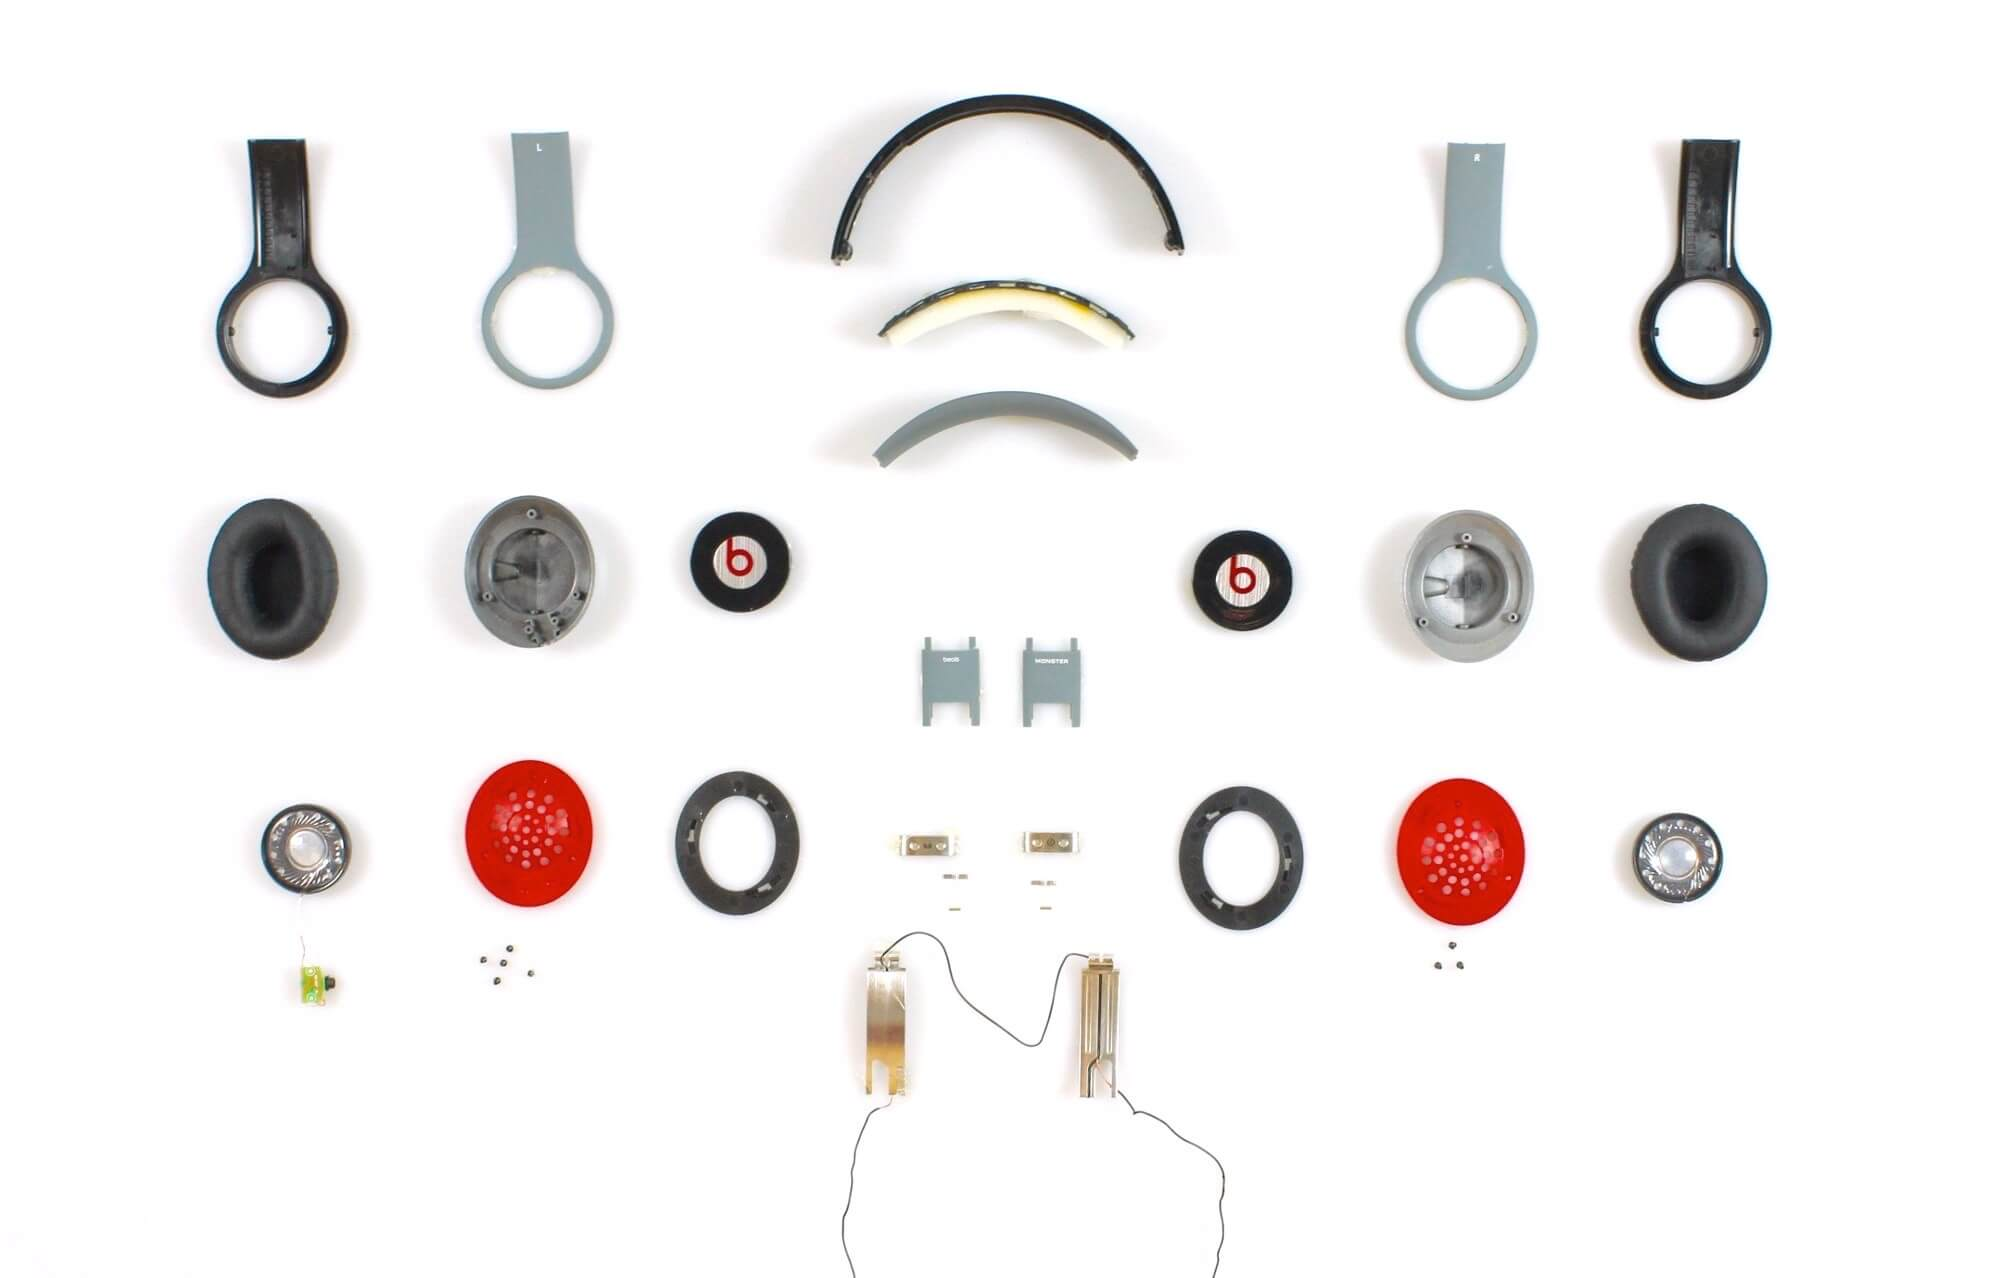 200 Beats Headphones Actually Cost Just 18 To Make Techspot Headphone Jack Wiring Diagram For Example The Two Speakers Included In Solo Hd Arguably Most Important Components An Estimated 180 Total